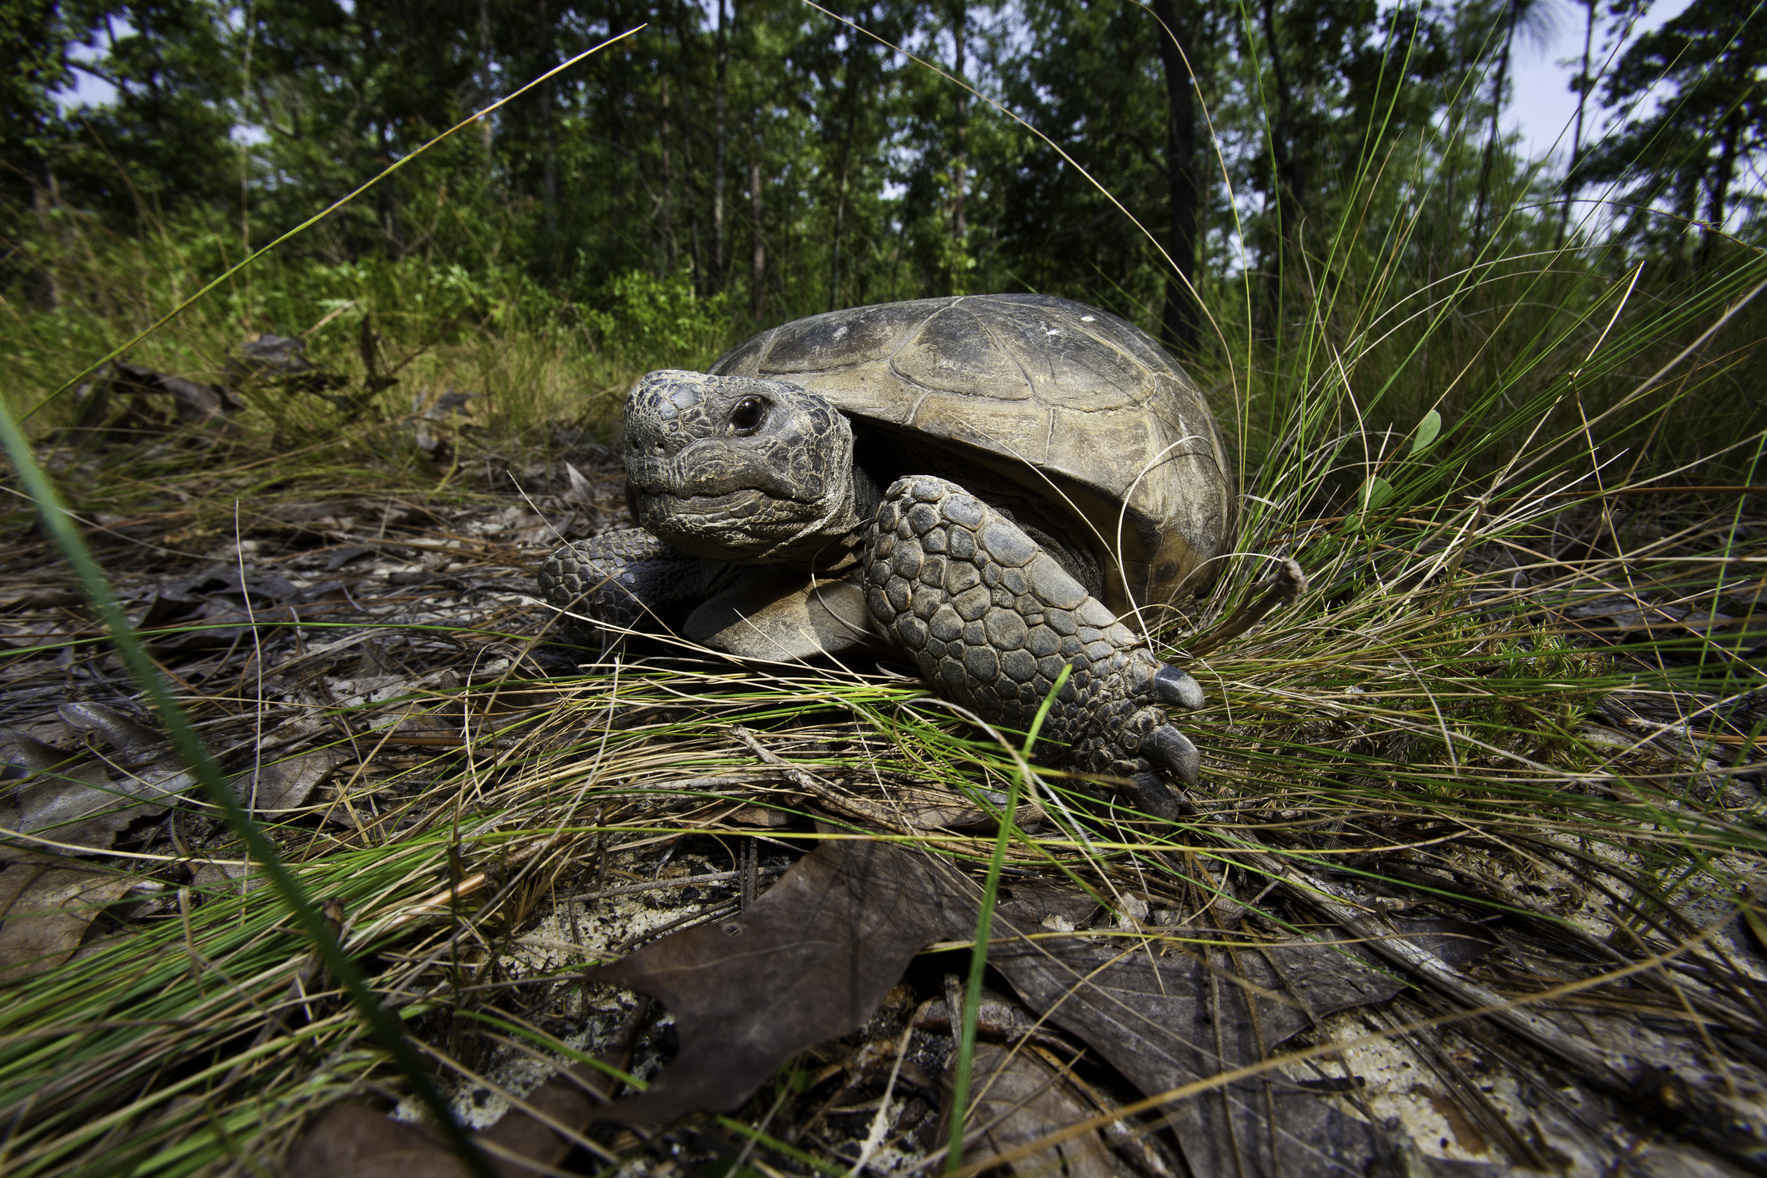 Give Today to Protect Georgia's Gopher Tortoise image